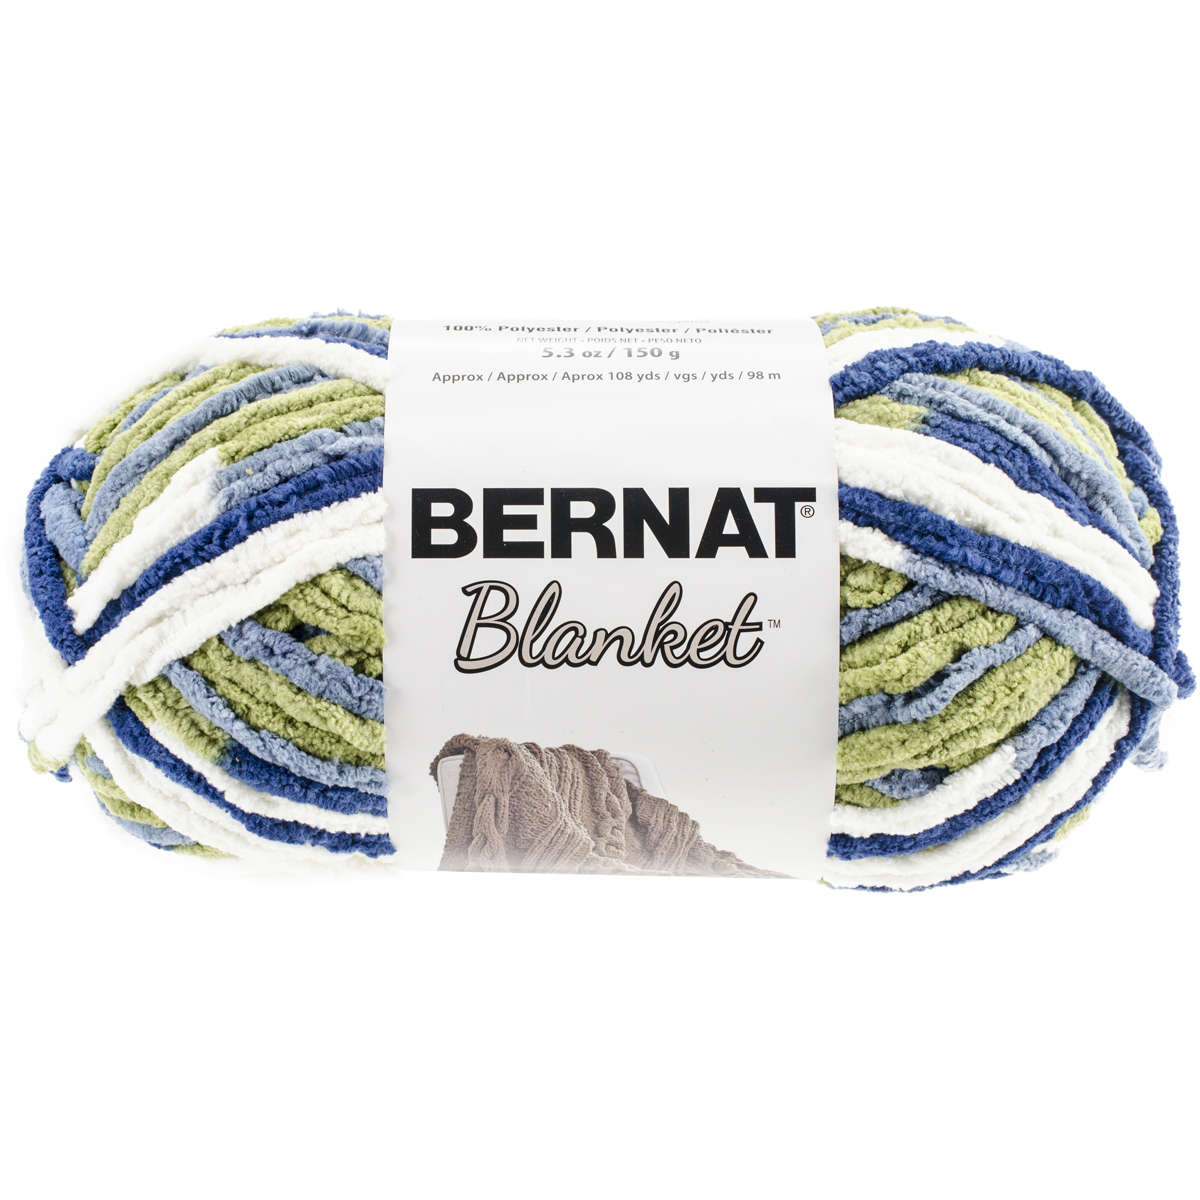 Bernat Blanket Yarn Oceanside 5.3oz - Click to enlarge